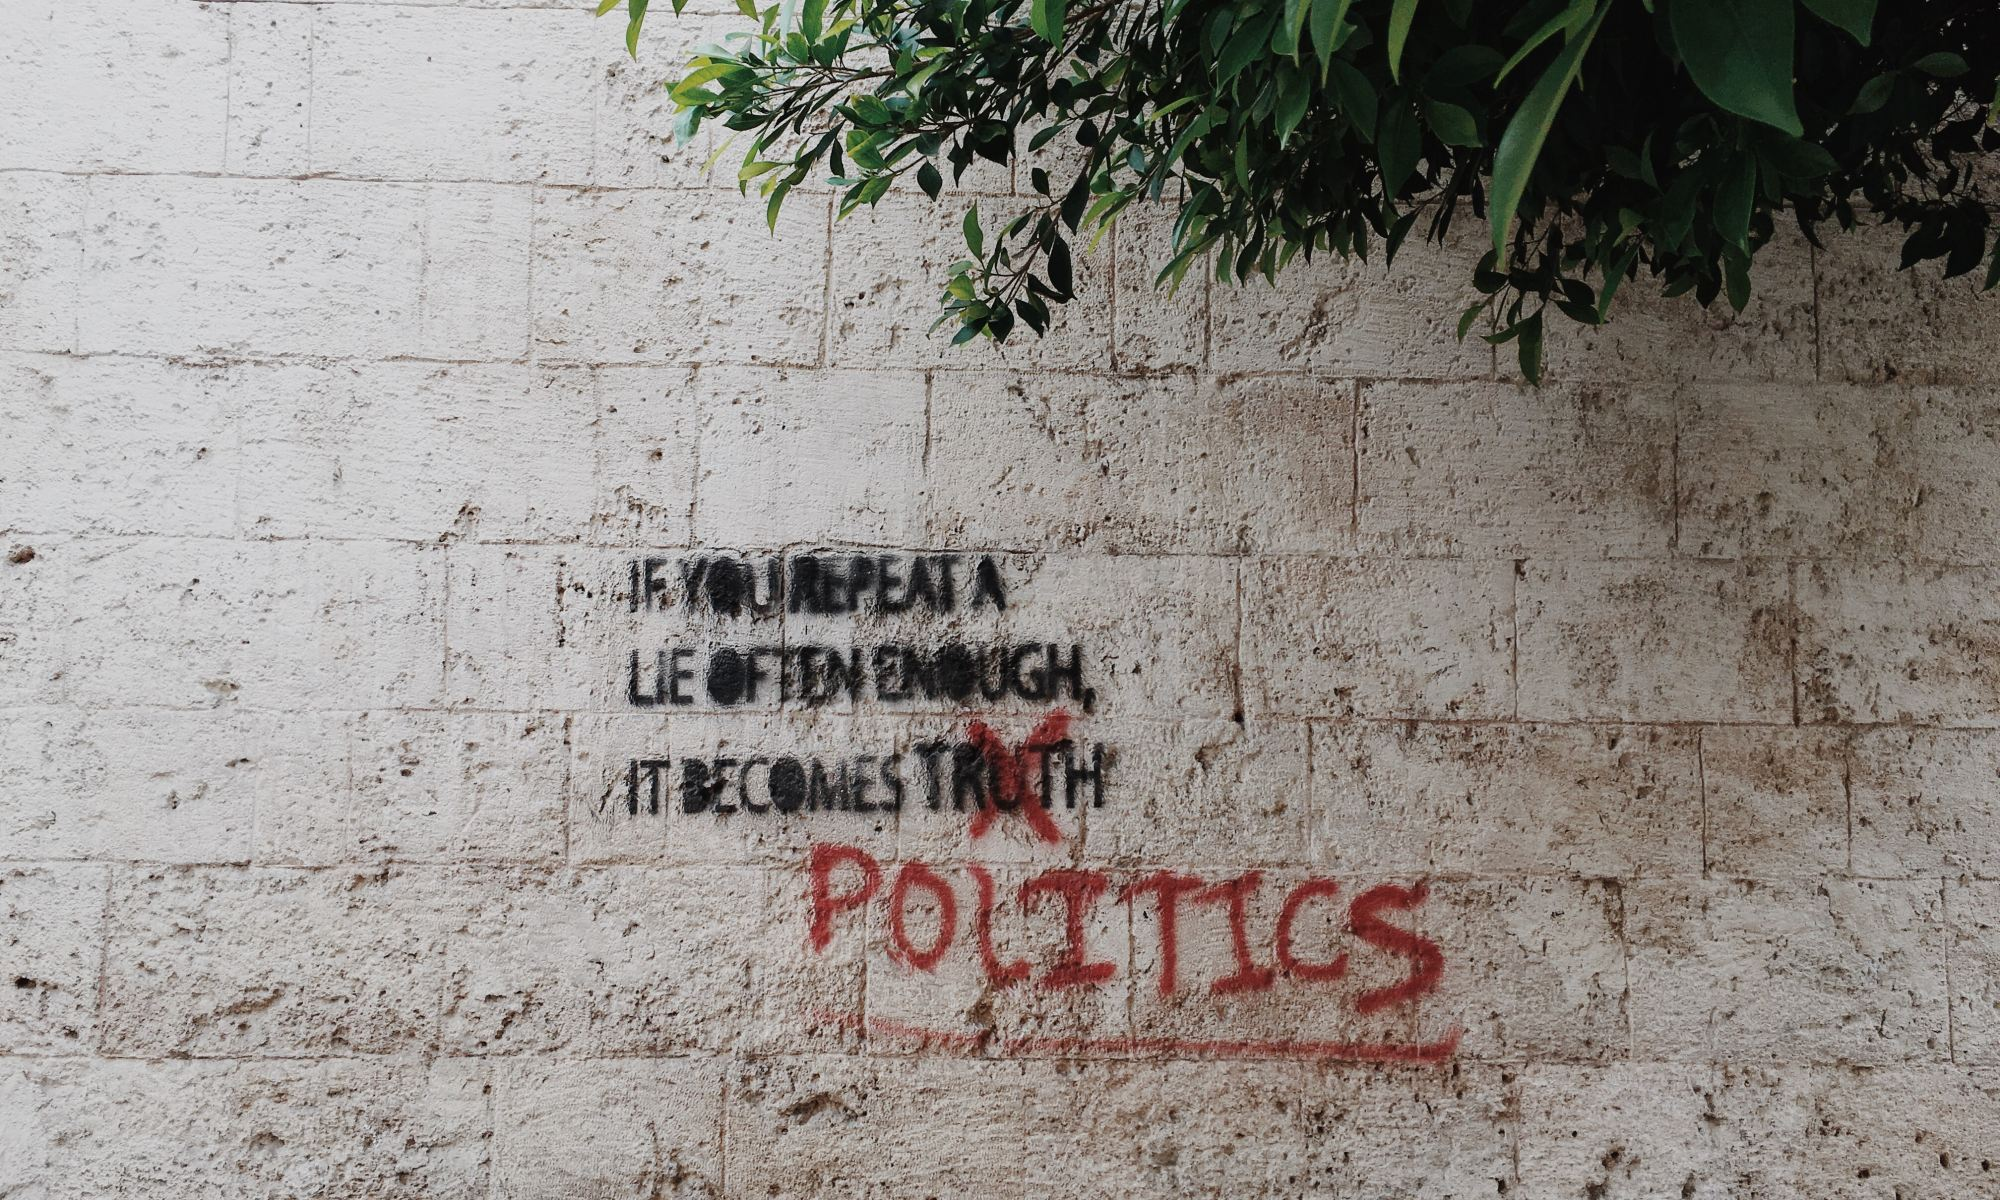 Graffiti about politics written on outside wall